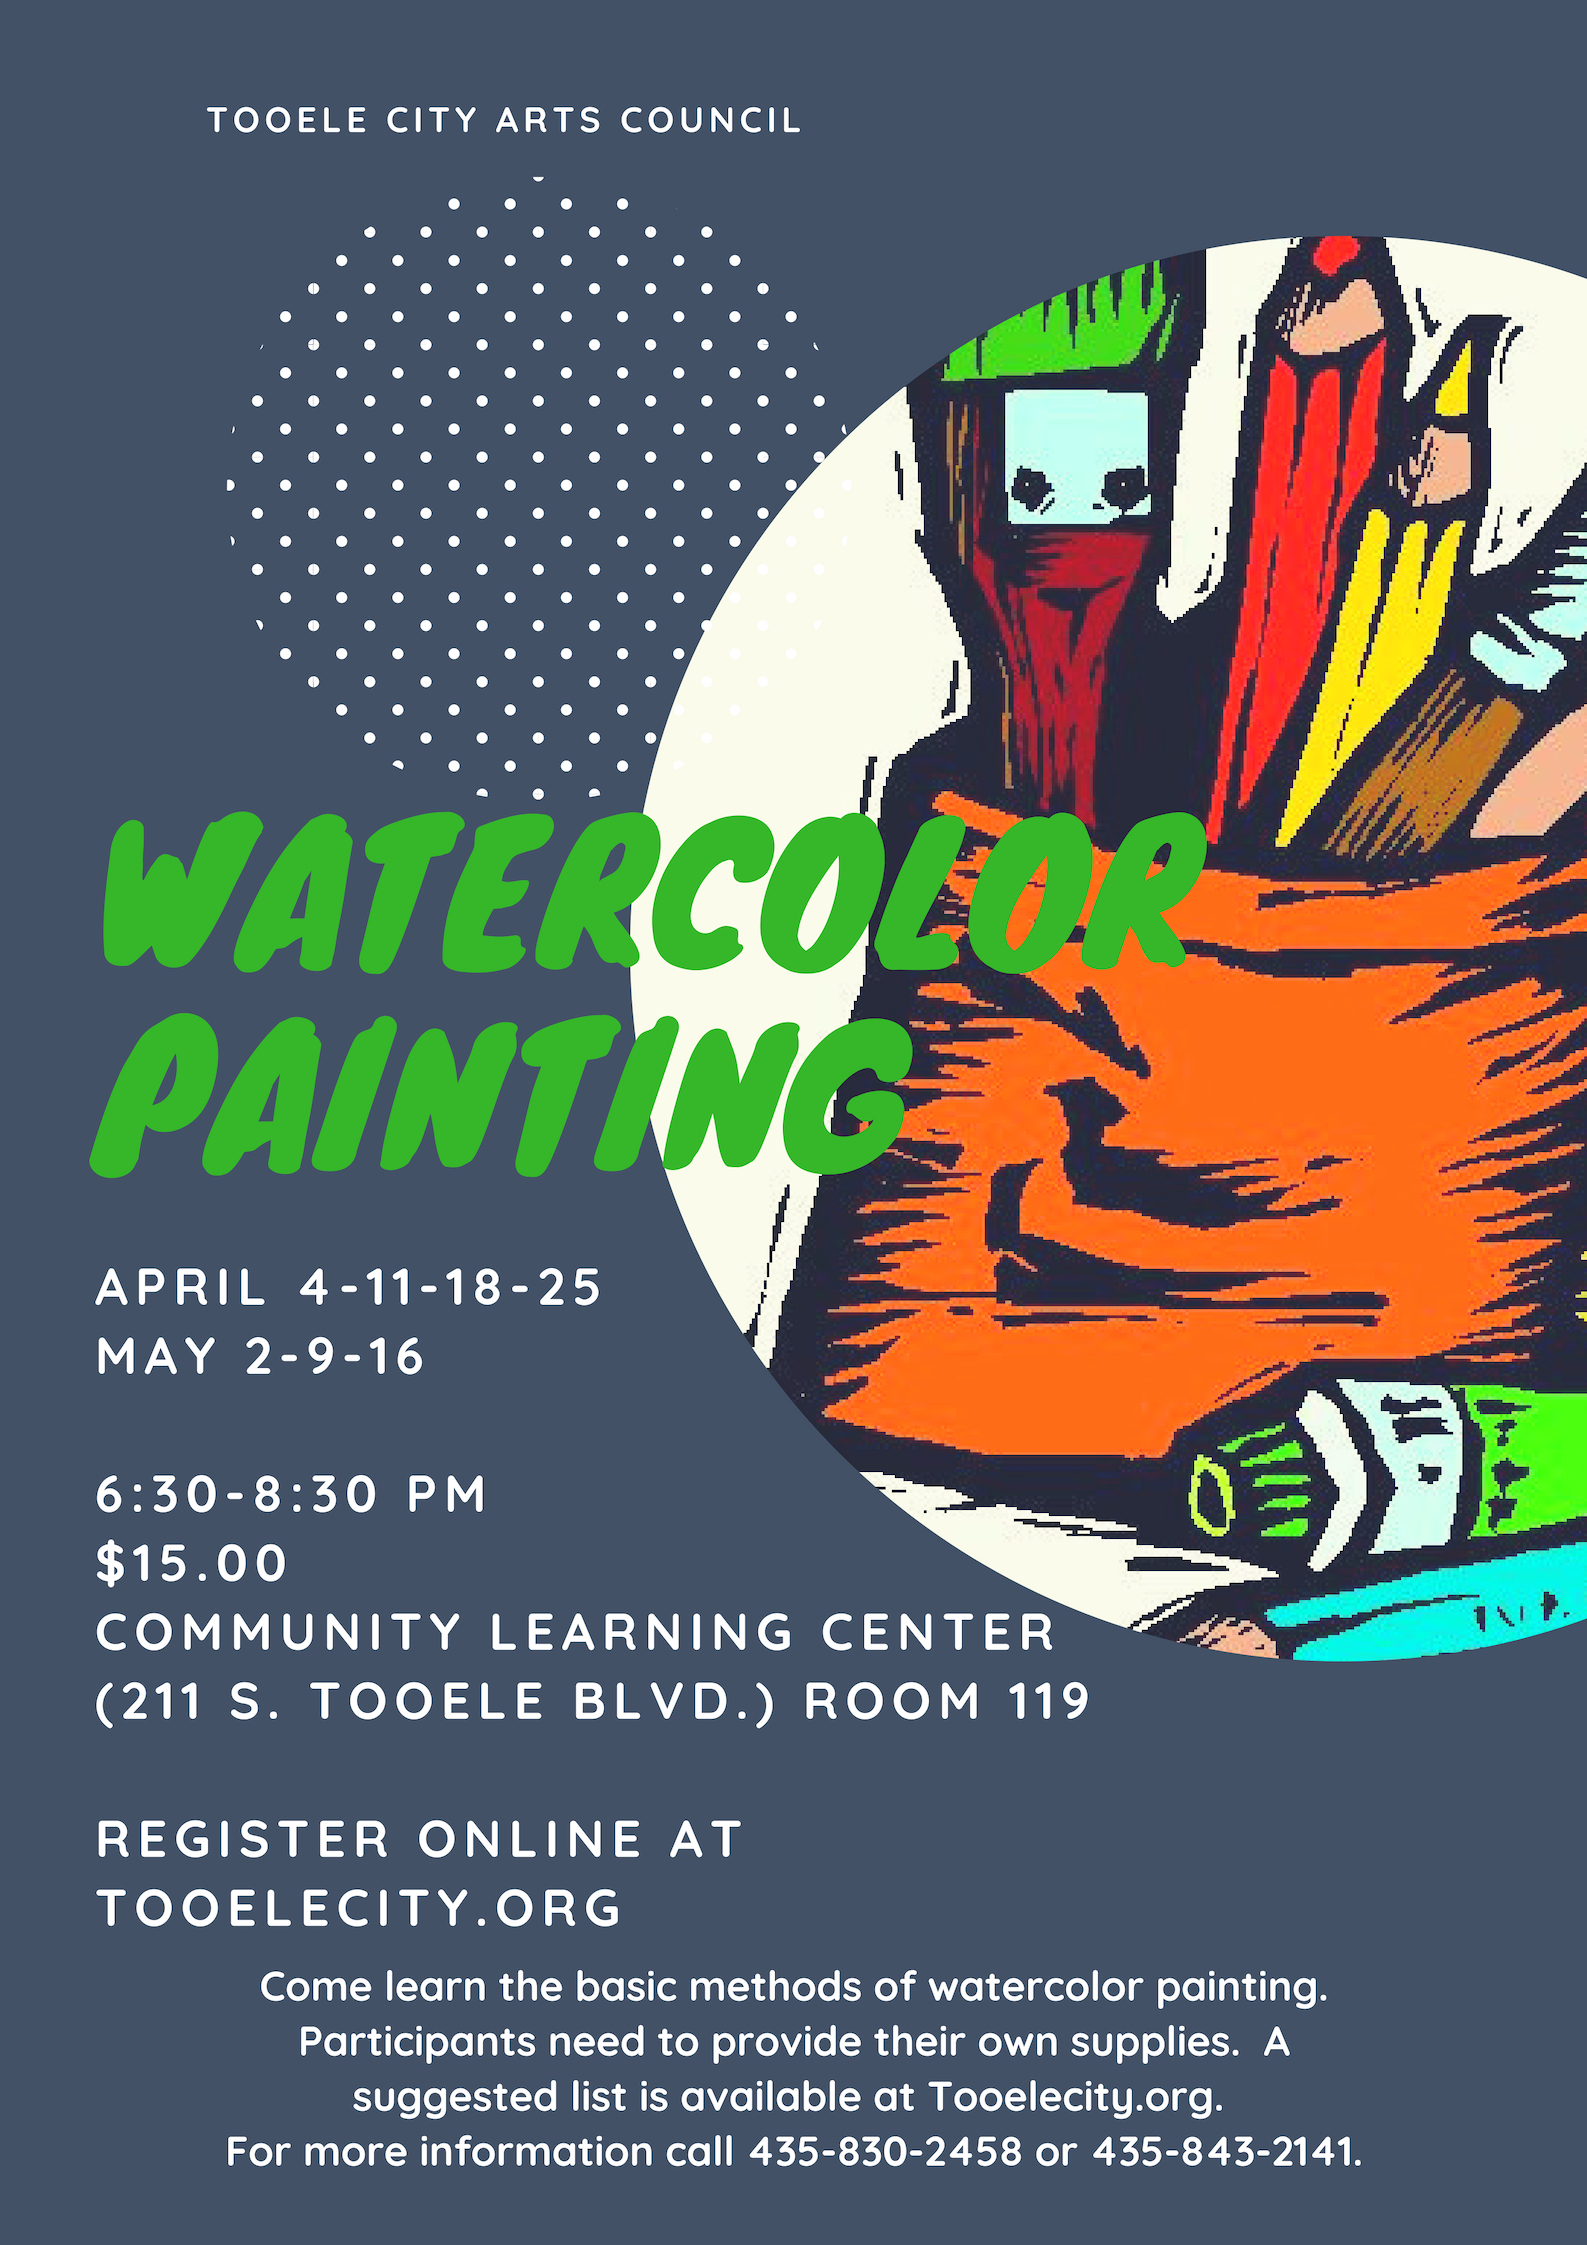 Watercolor Painting 2019 @ Community Learning Center Room #119 | Tooele | Utah | United States